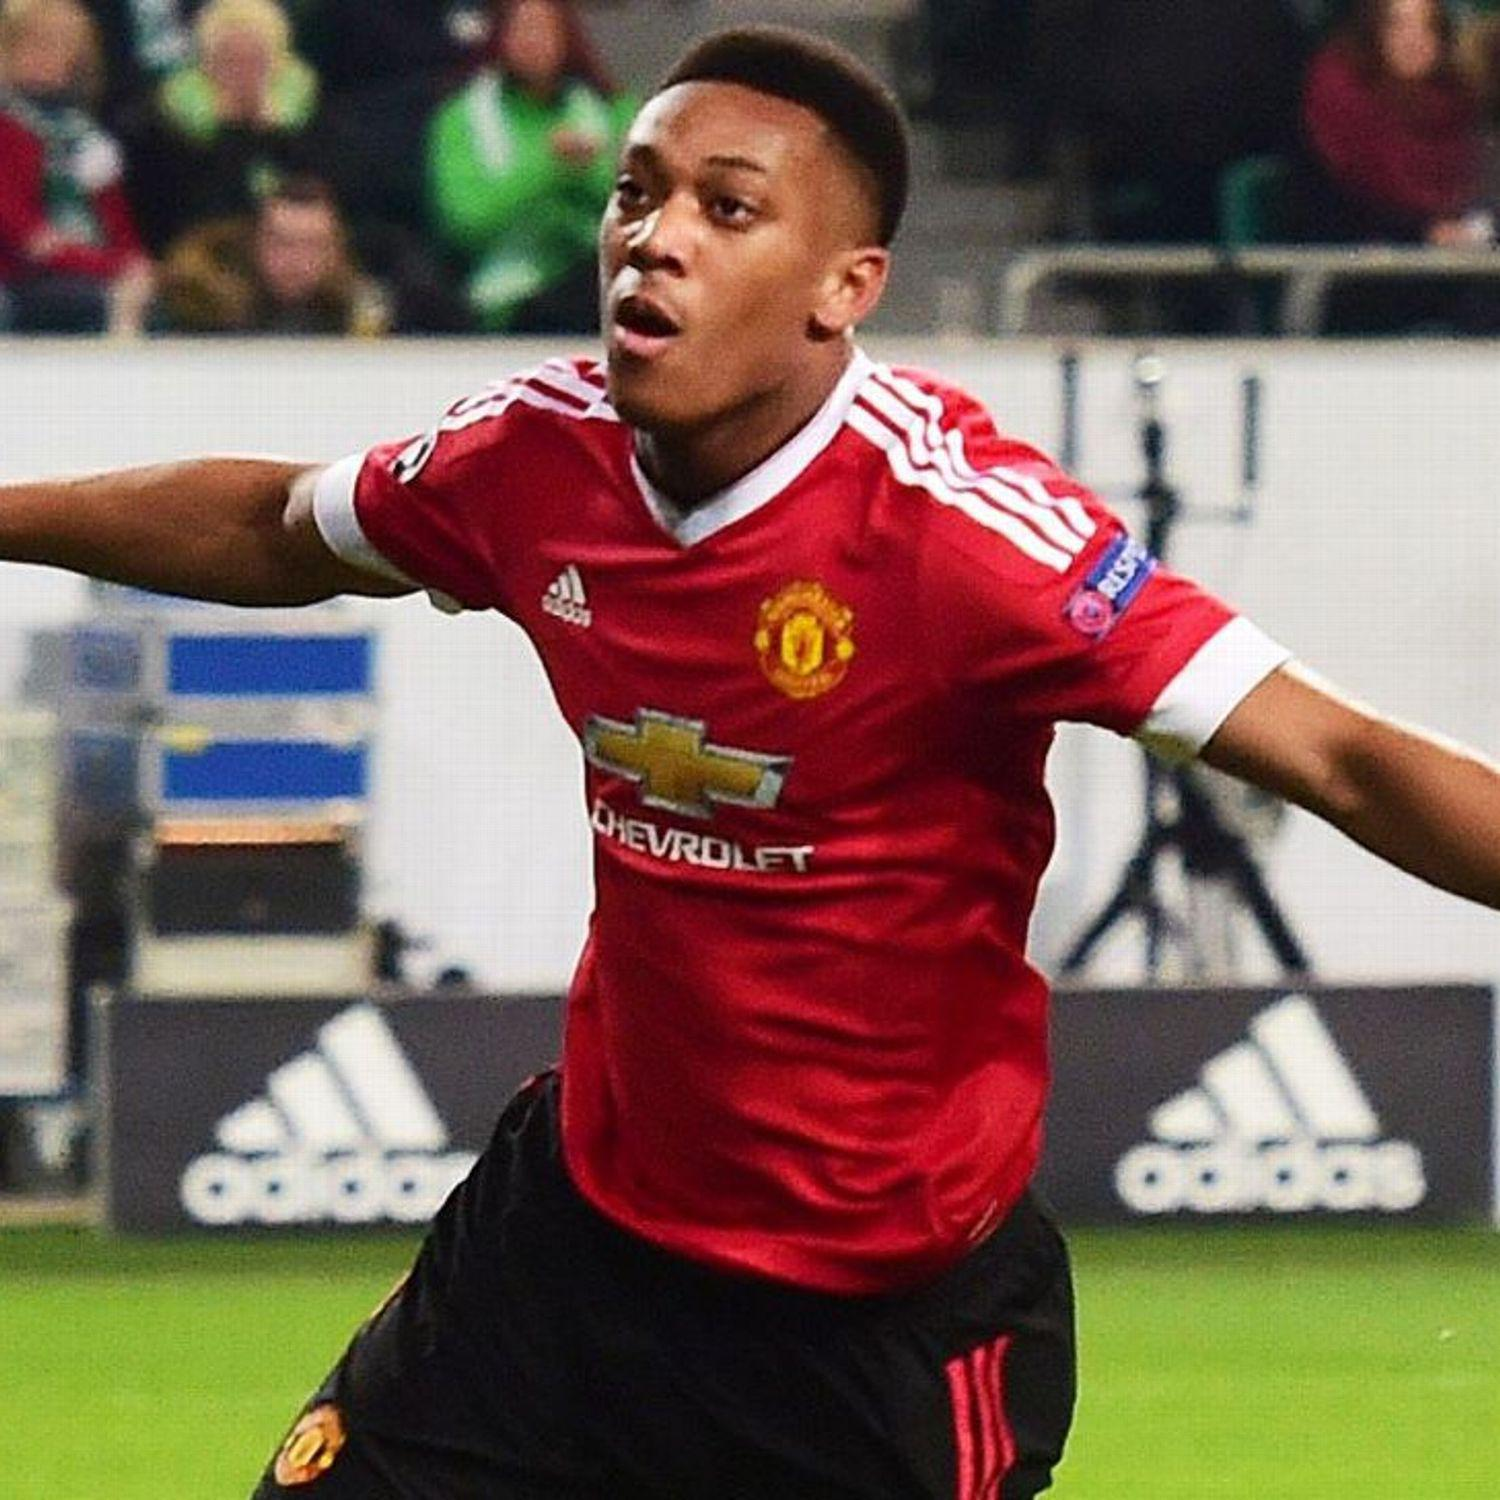 Man United Striker Anthony Martial Wins 2015 Golden Boy Award